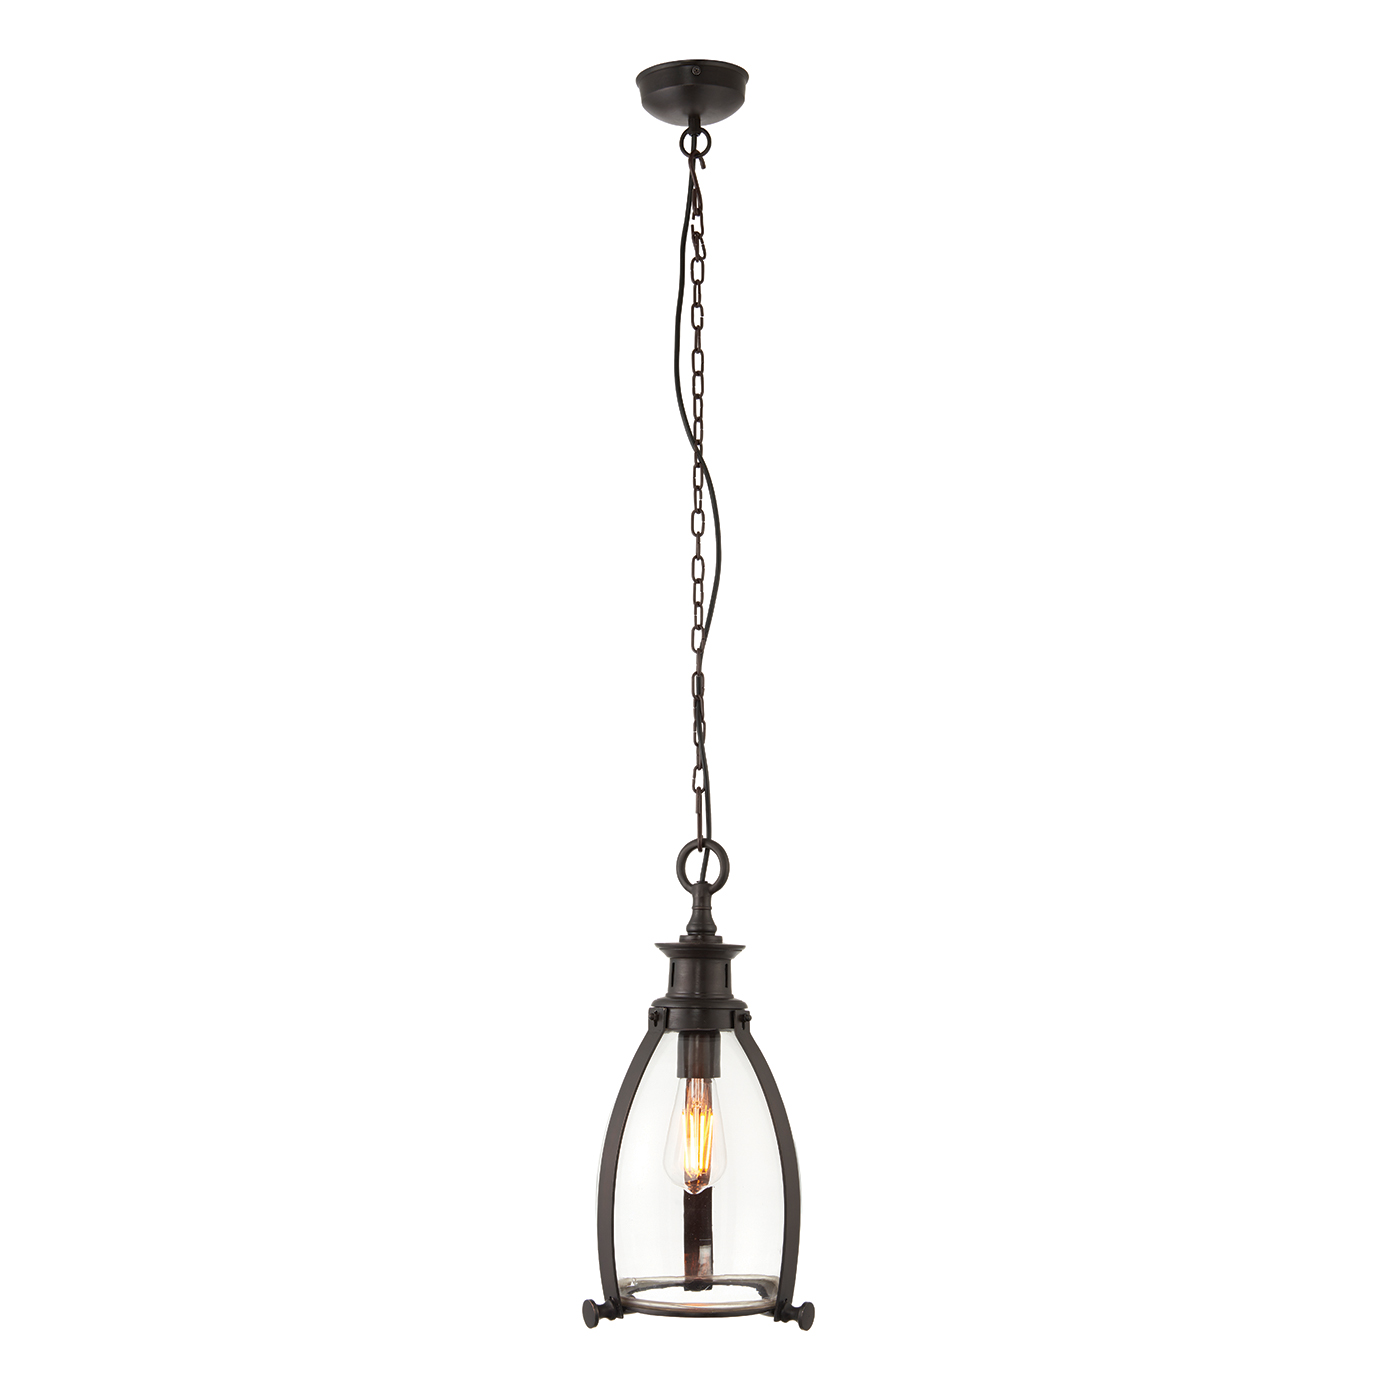 Endon Storni 210mm pendant 40W Aged bronze effect plate & clear glass Thumbnail 1